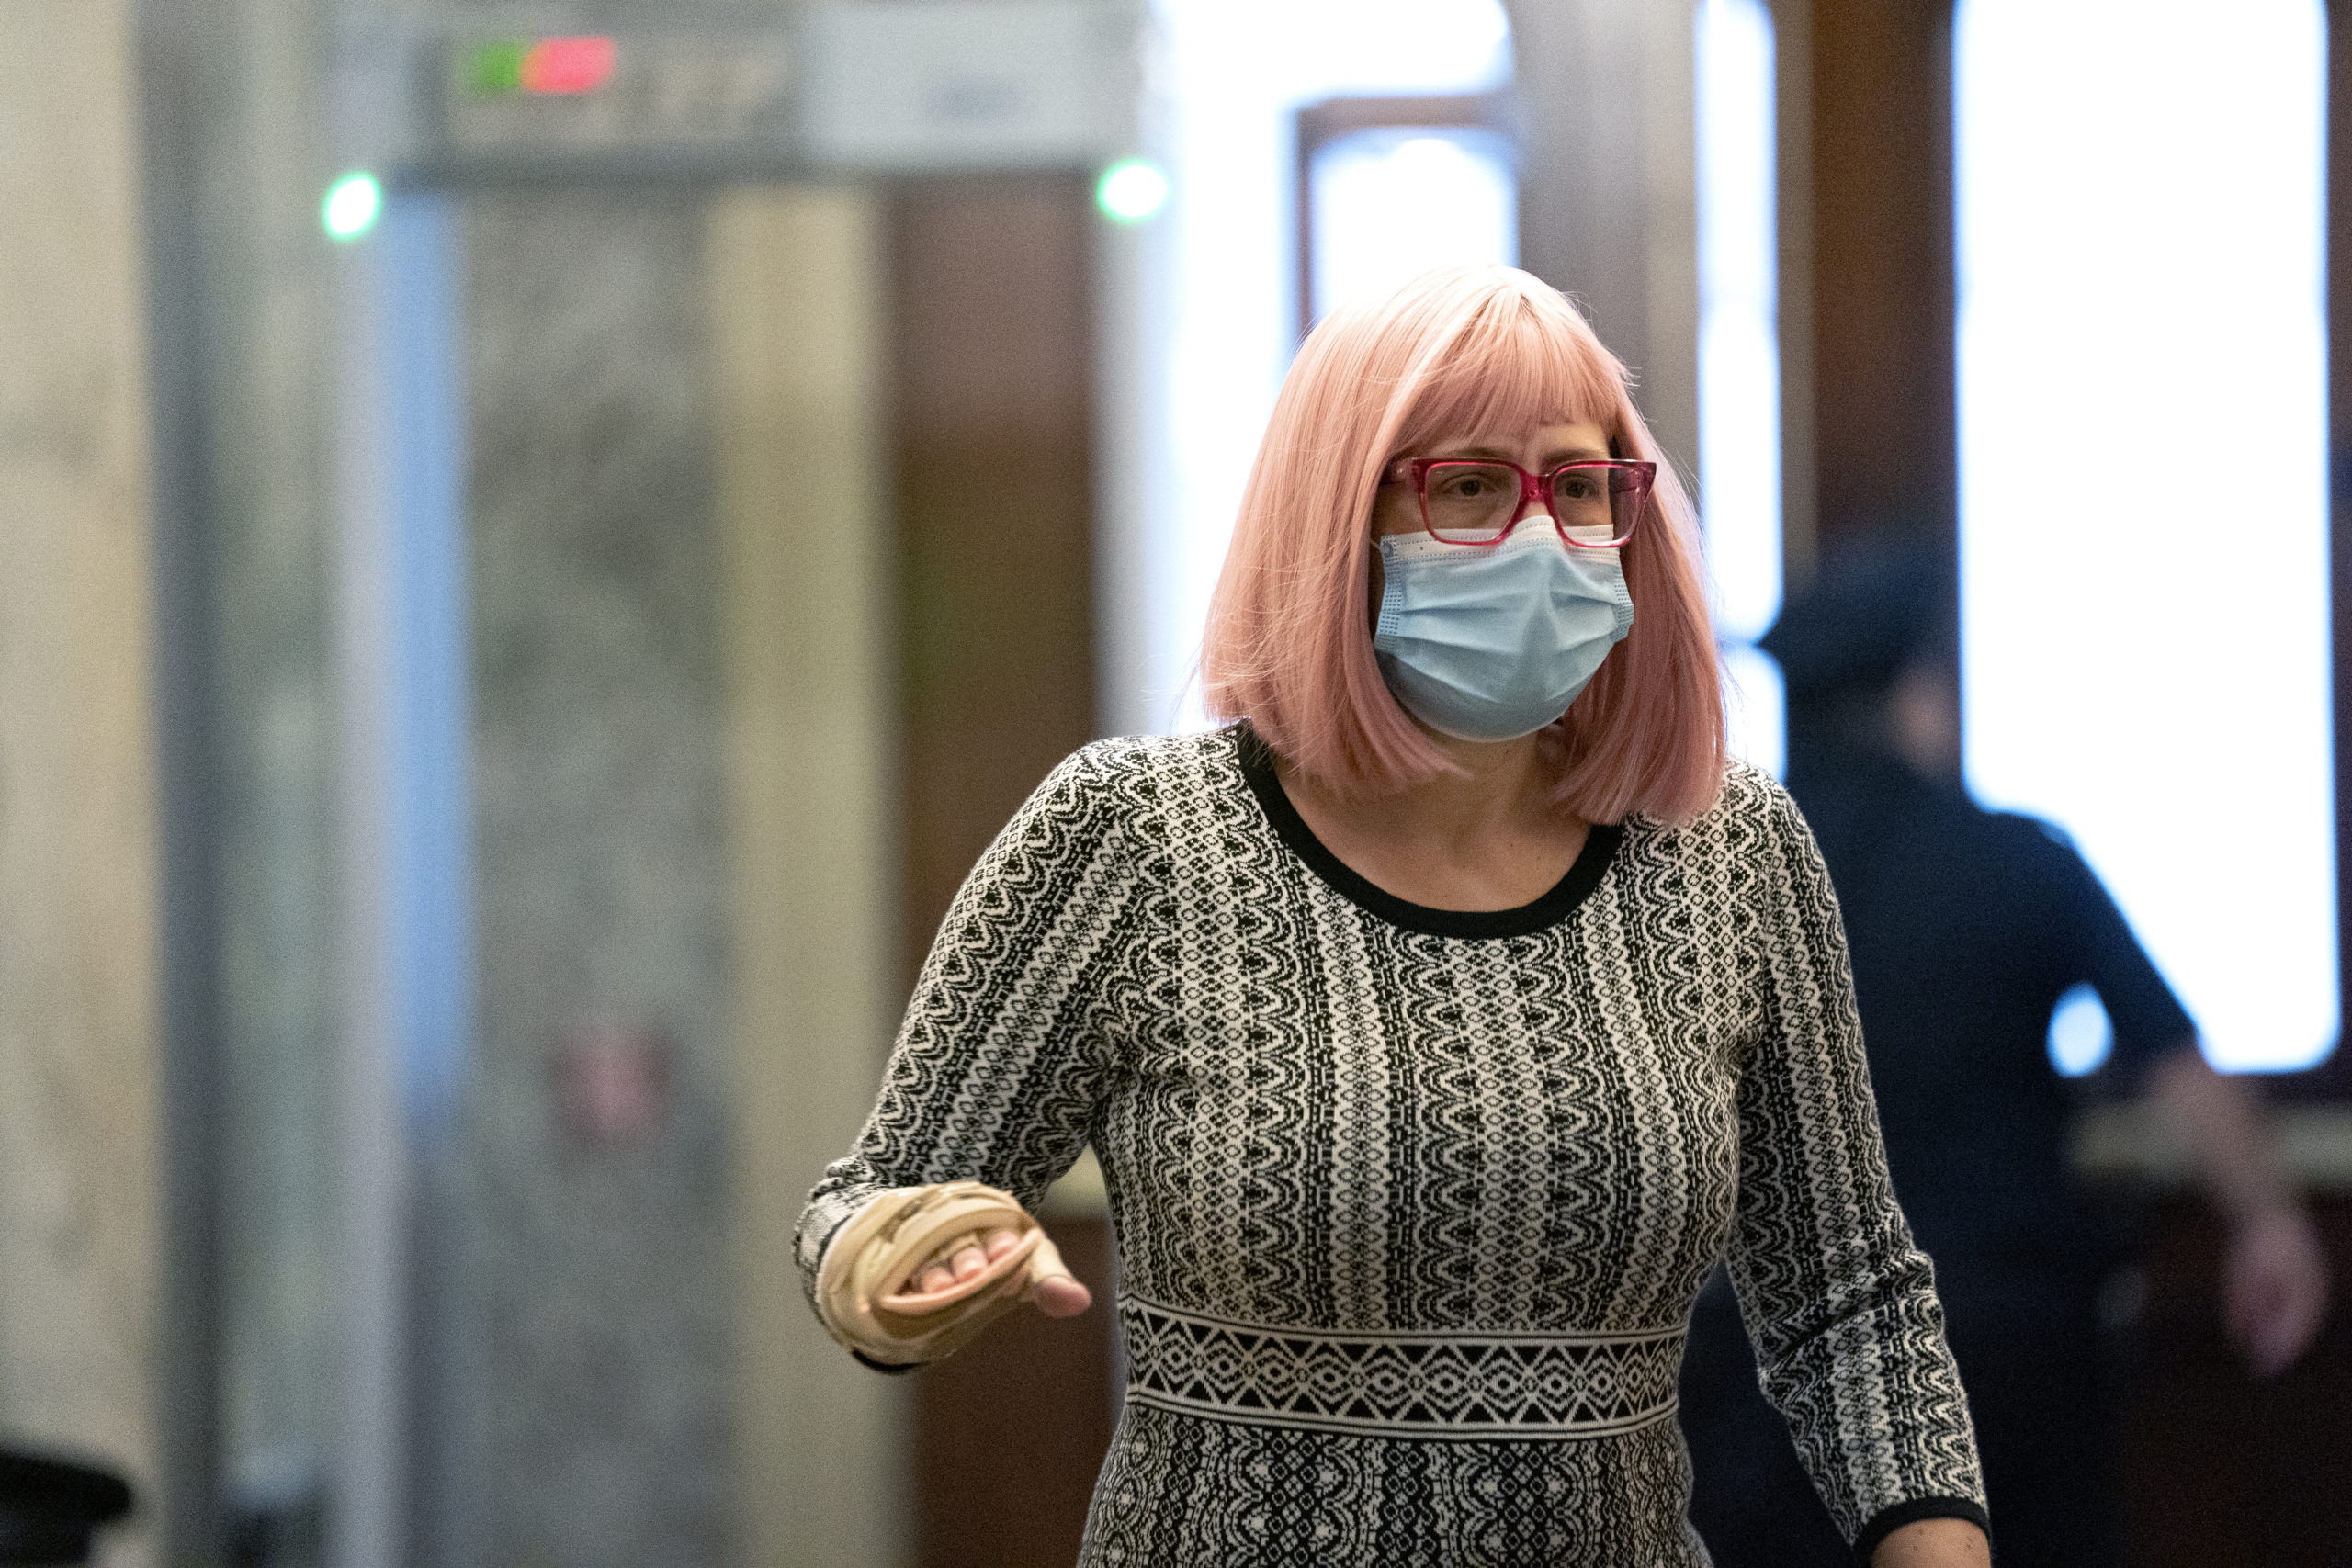 Sen. Kyrsten Sinema wears a protective mask while arriving to the U.S. Capitol on December 11, 2020 in Washington, DC. (Stefani Reynolds/Getty Images)